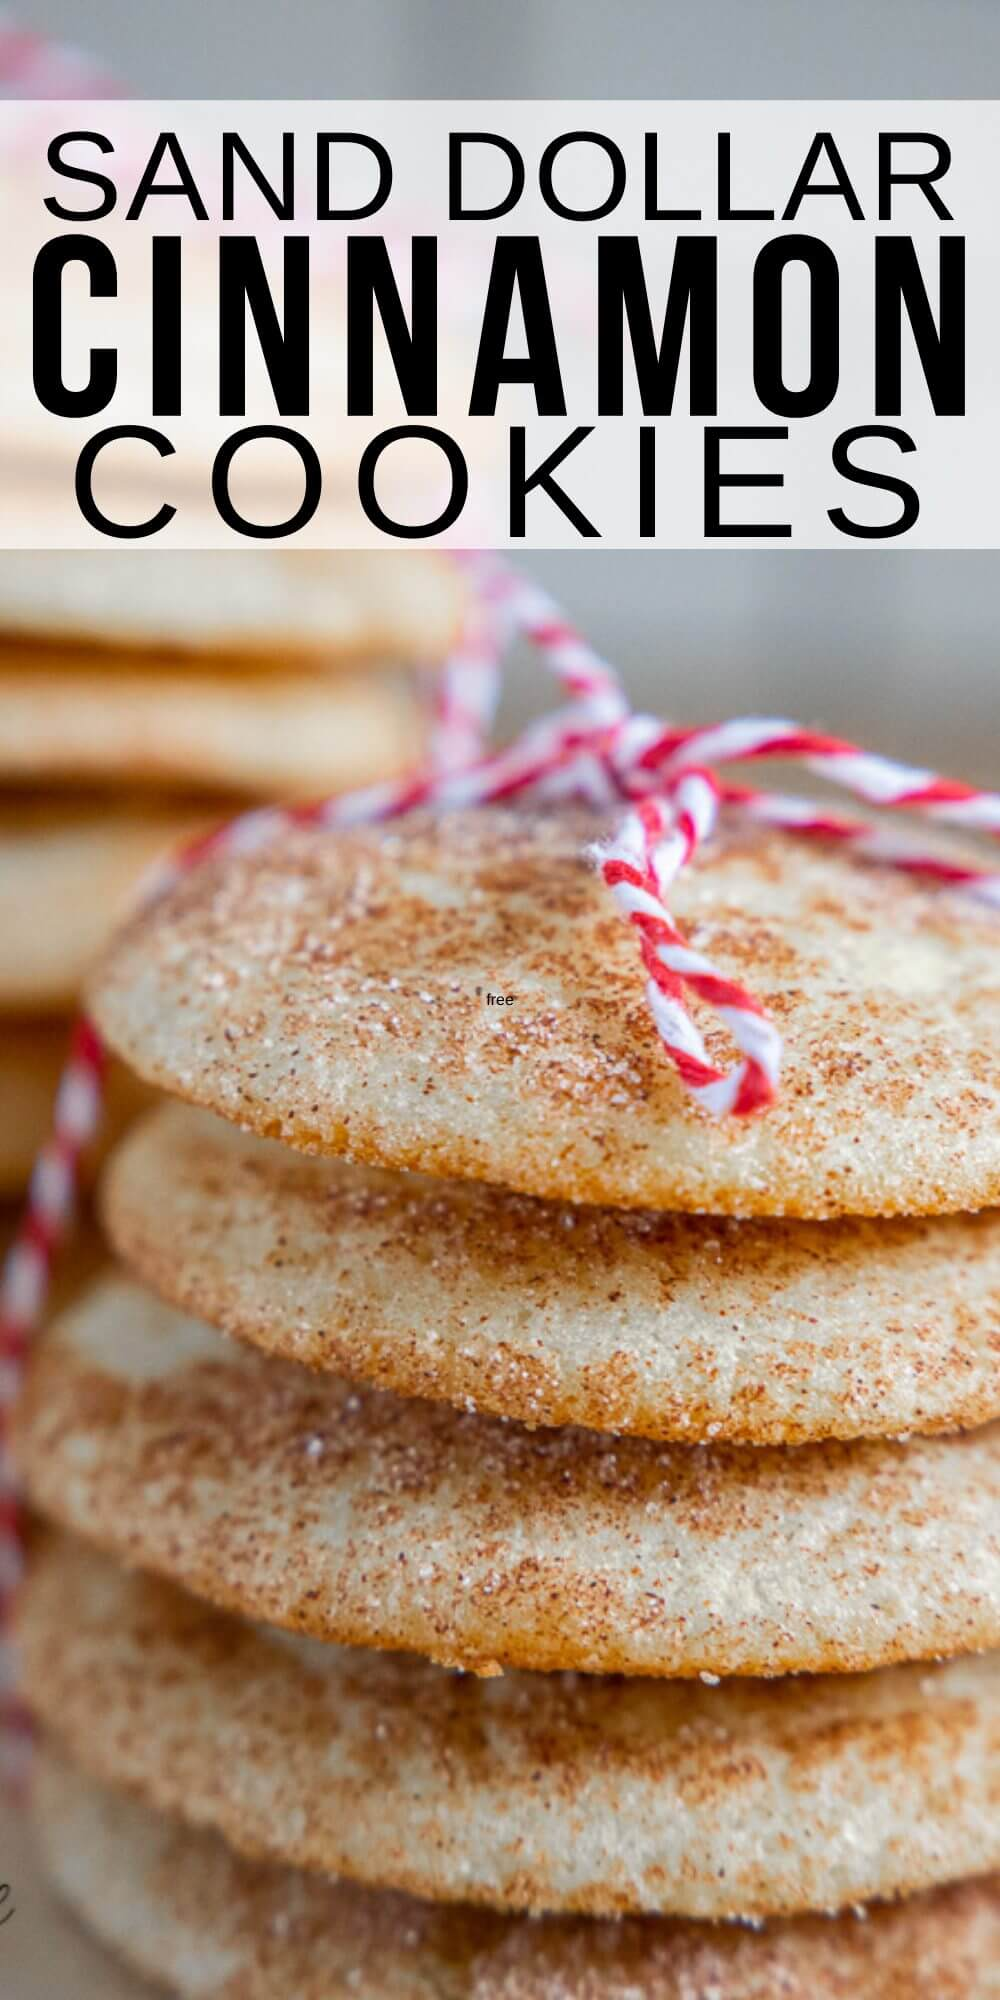 Make these amazing light and fluffy cinnamon cookies! They are different than snickerdoodle, and they are so tender and fluffy.  They are easy to make and taste even better the next day!